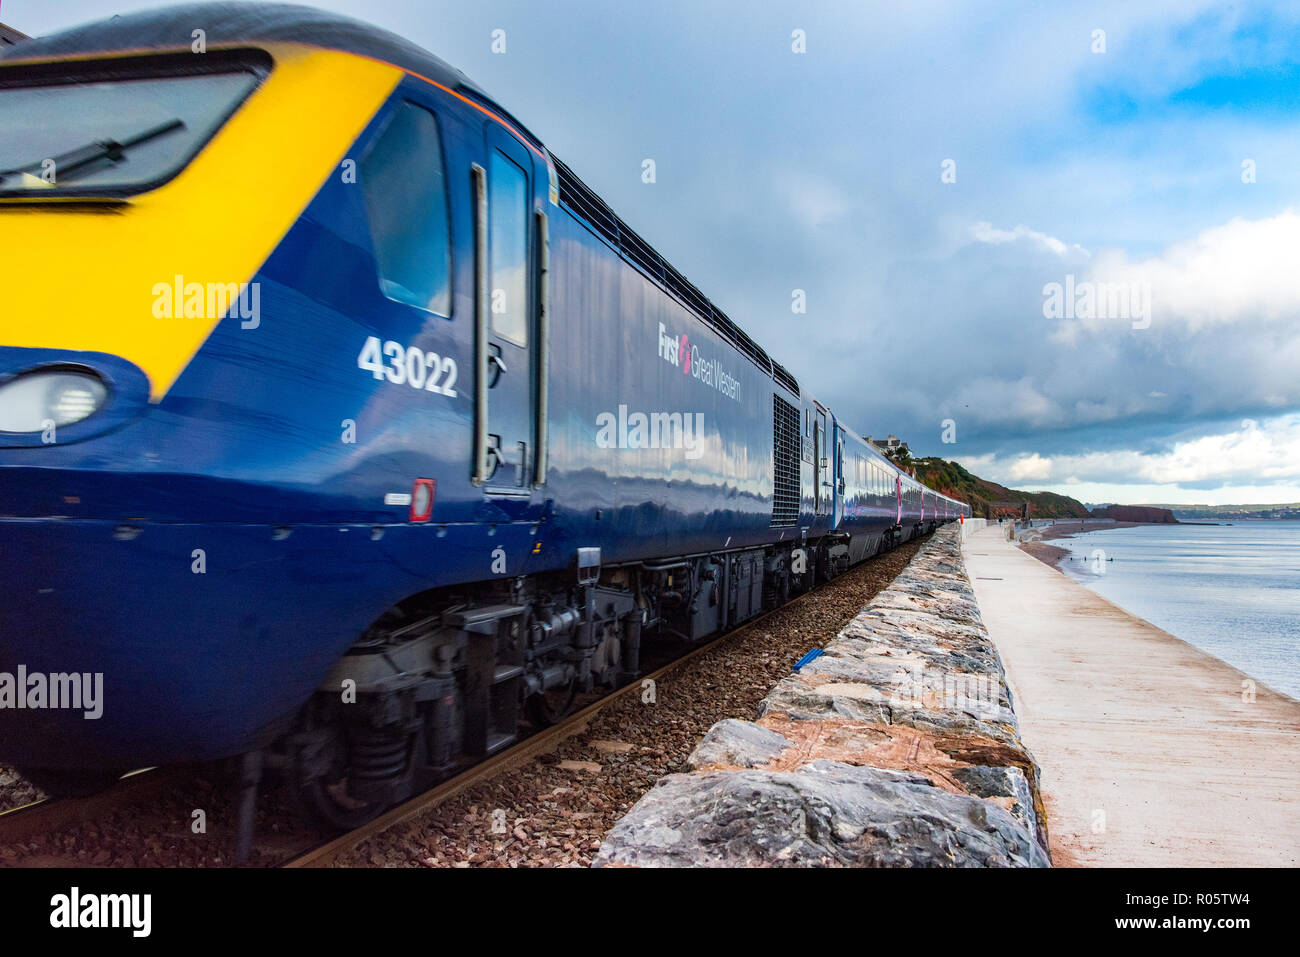 DAWLISH, DEVON, UK - 26OCT2018: GWR Class 43 High Speed Train 43022 travelling south along the sea wall at from Dawlish. - Stock Image